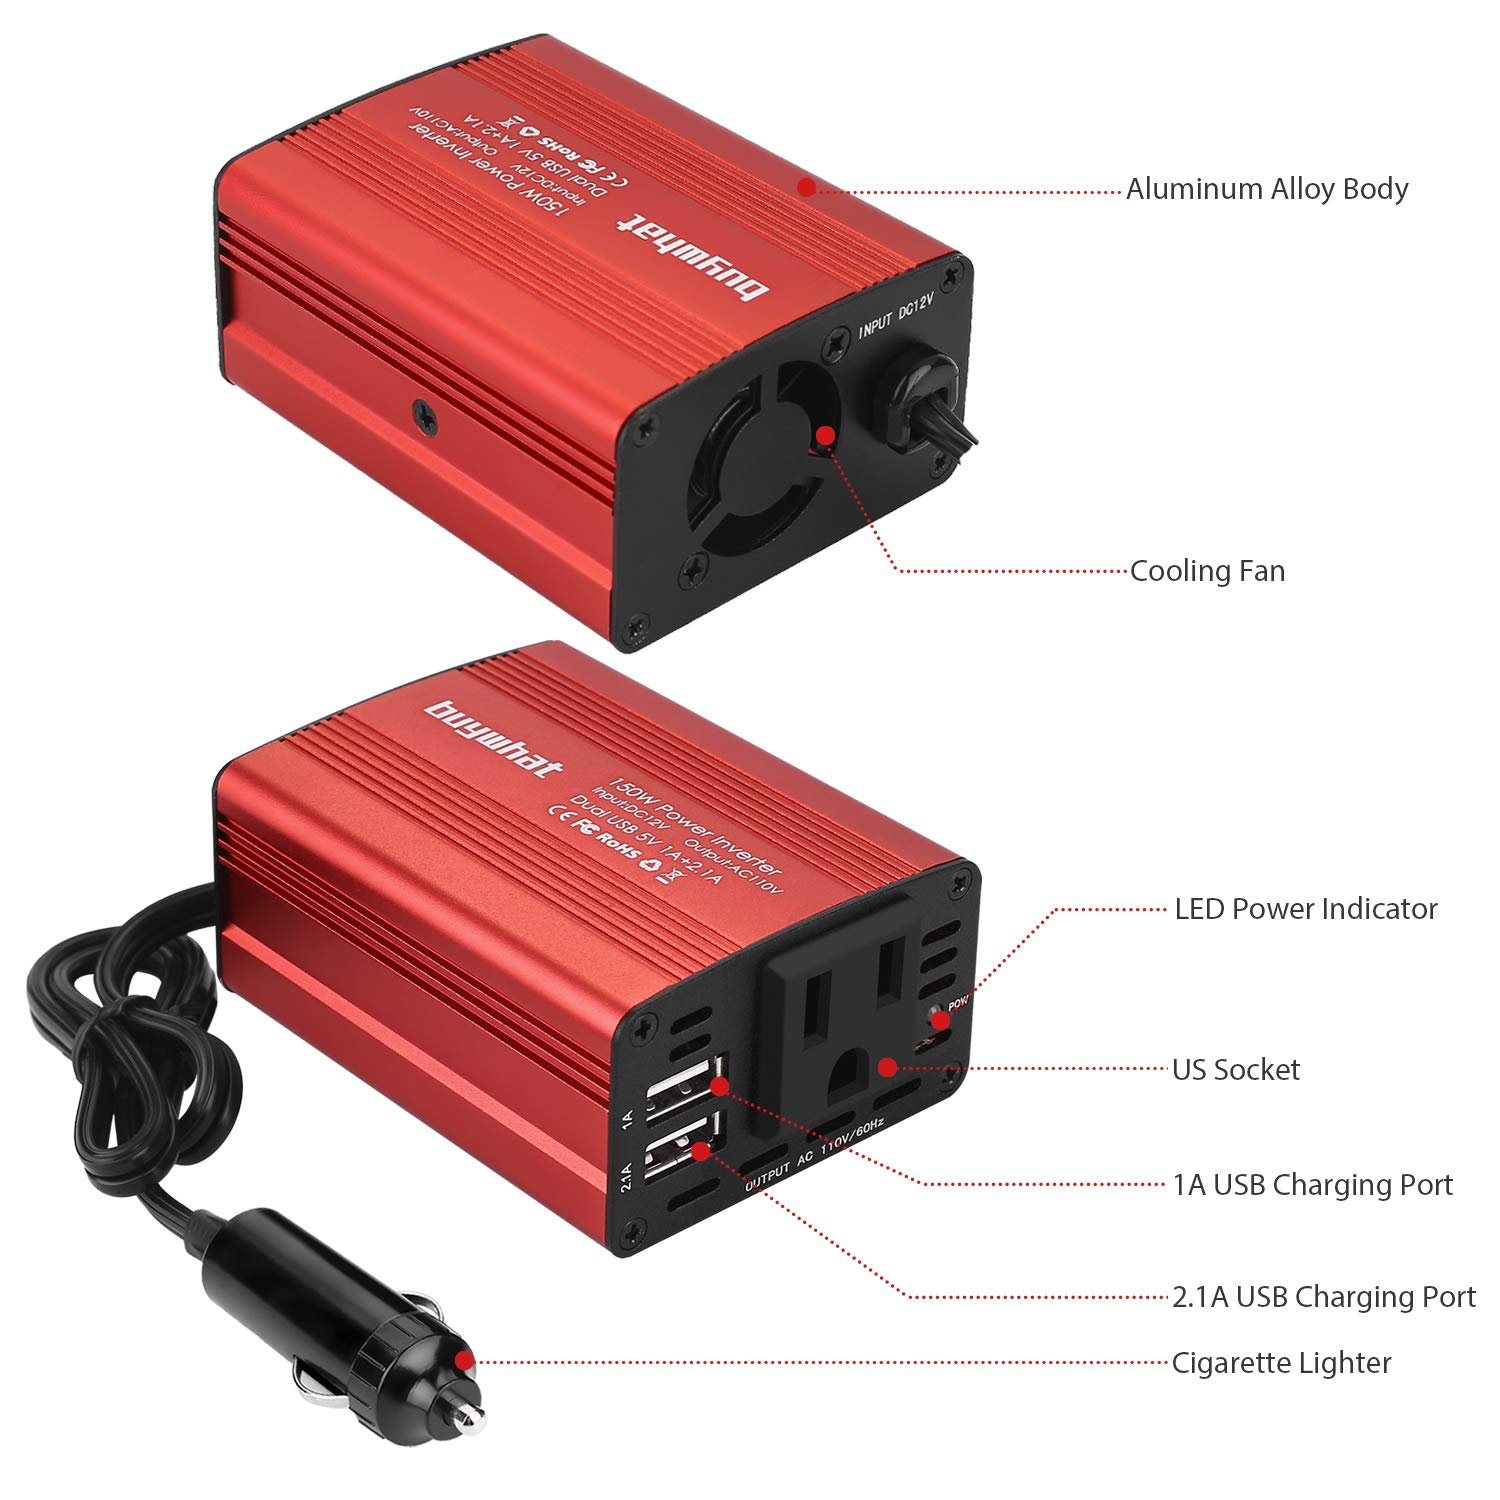 Buy What BW-150 150W Car Power Inverter DC 12V to 110V AC Outlet Converter 3.1A Dual USB Car Charger Adapter(Red) by Buywhat (Image #1)